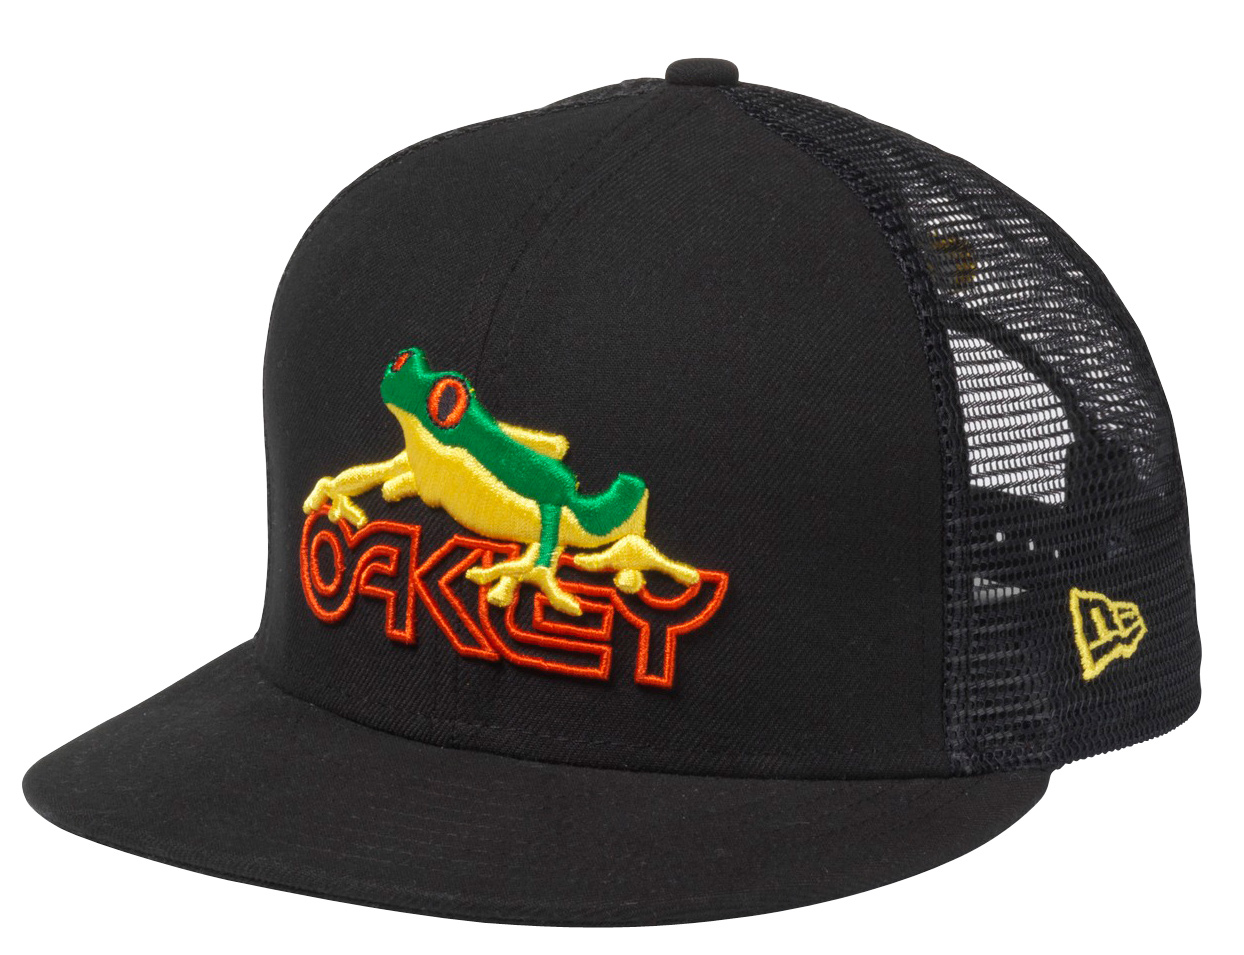 Oakley California fit snap back construction with deep fit, flat brim, raised embroidered logo on front, padded sweatband and moisture wicking material - $30.00